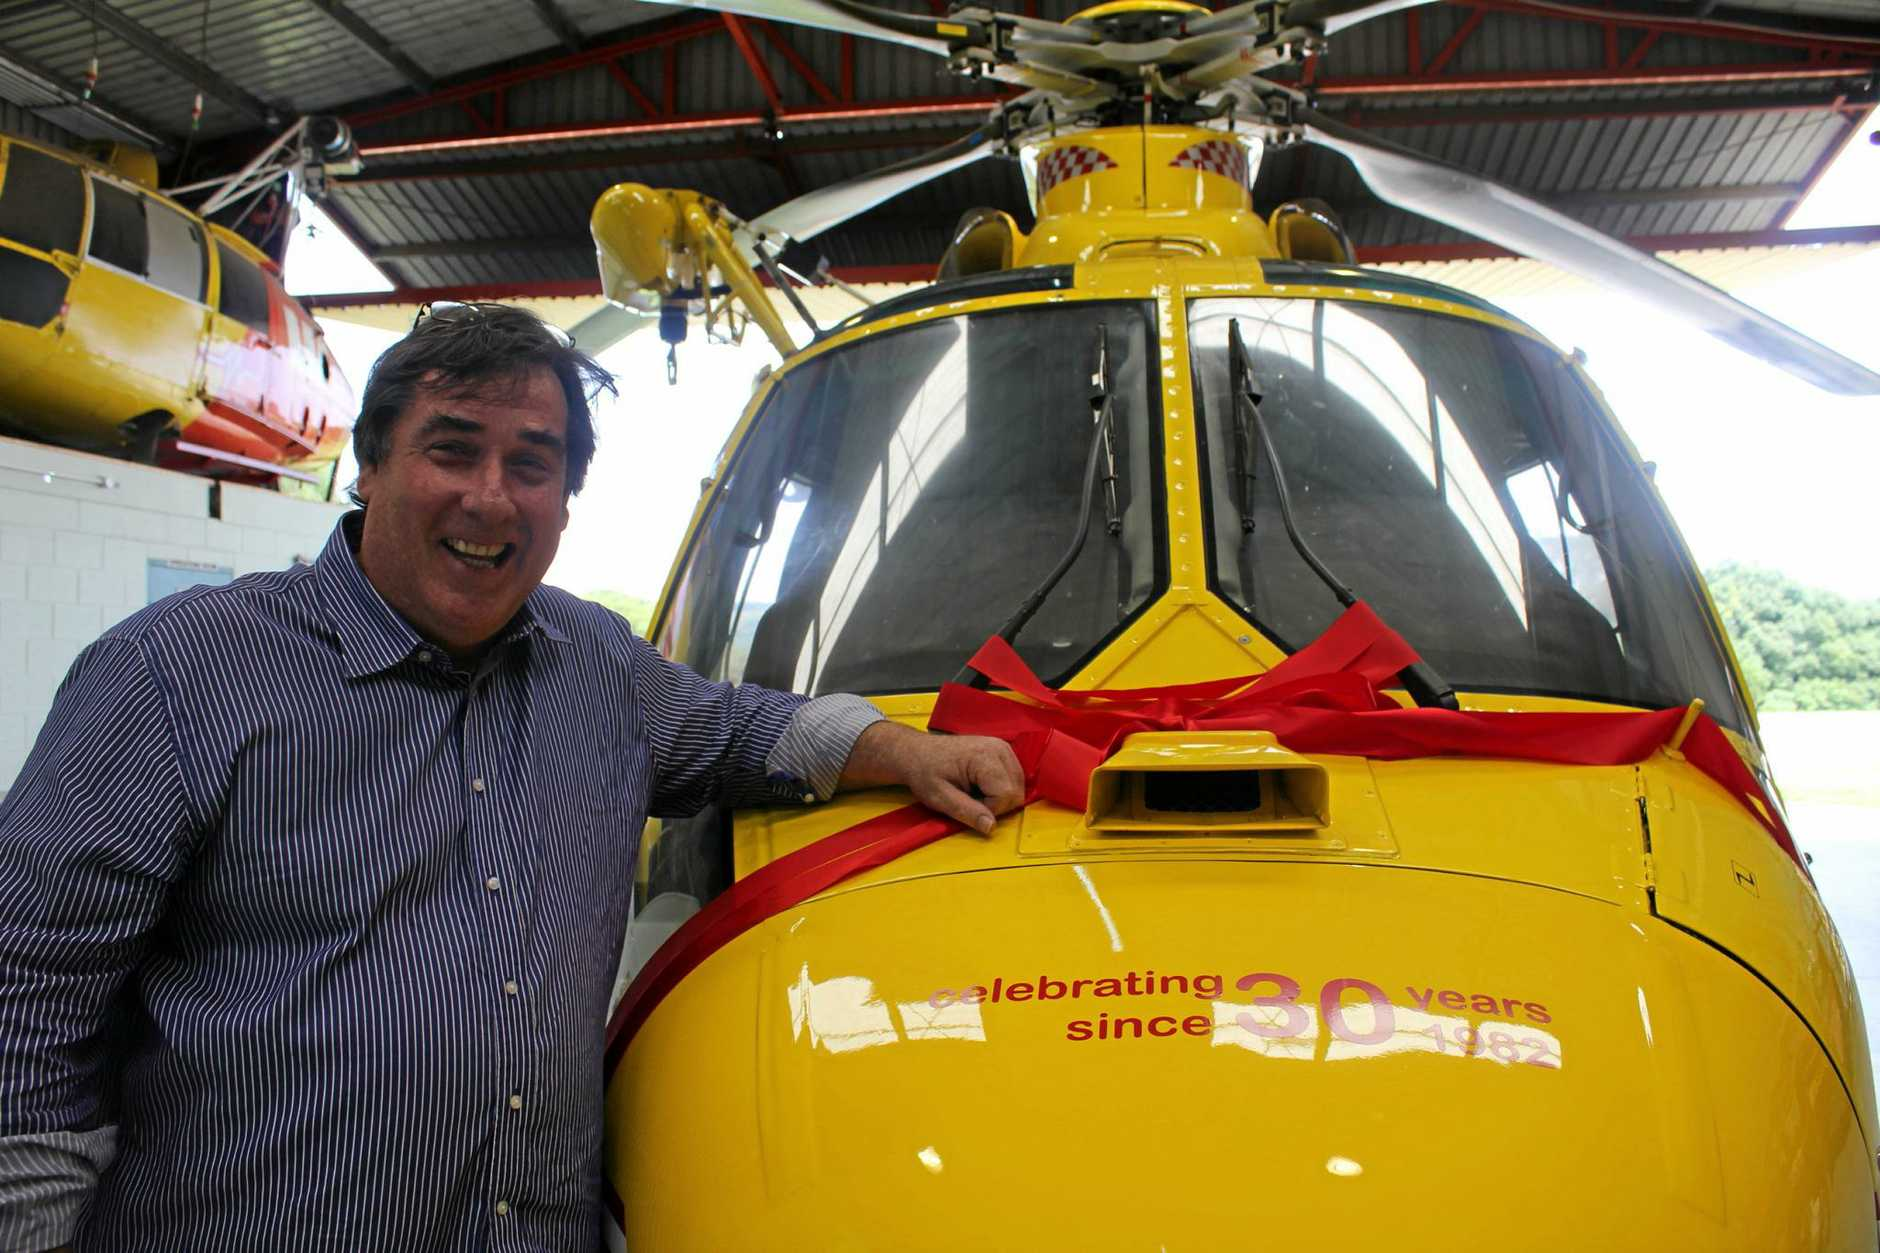 Elton Cummings, founder of the Westpac Life Saver Rescue Helicopter in the Northern NSW Region celebrates 30 years of the service saving lives.